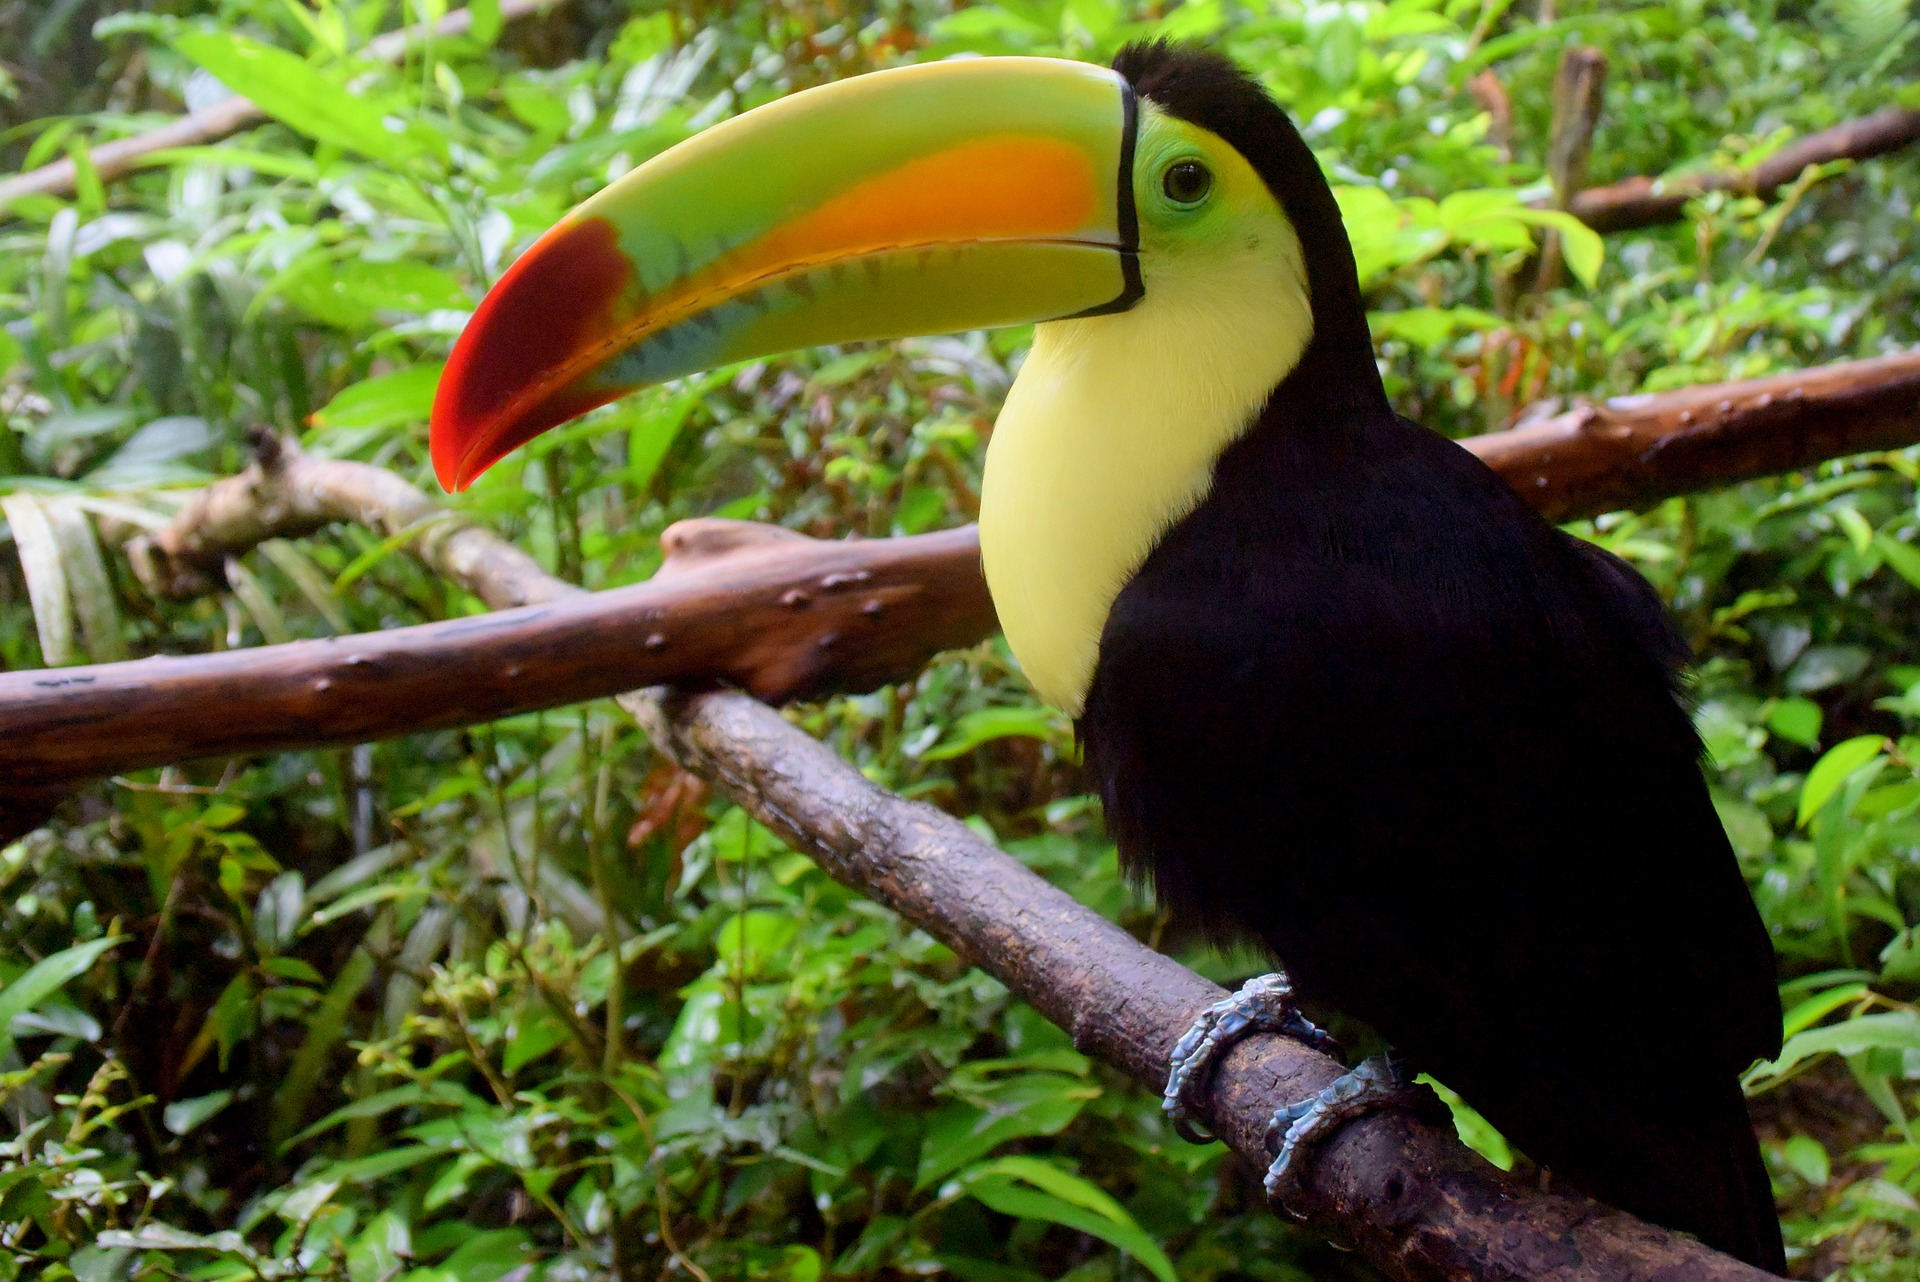 Travel to Belize - Toucan at Belize Zoo